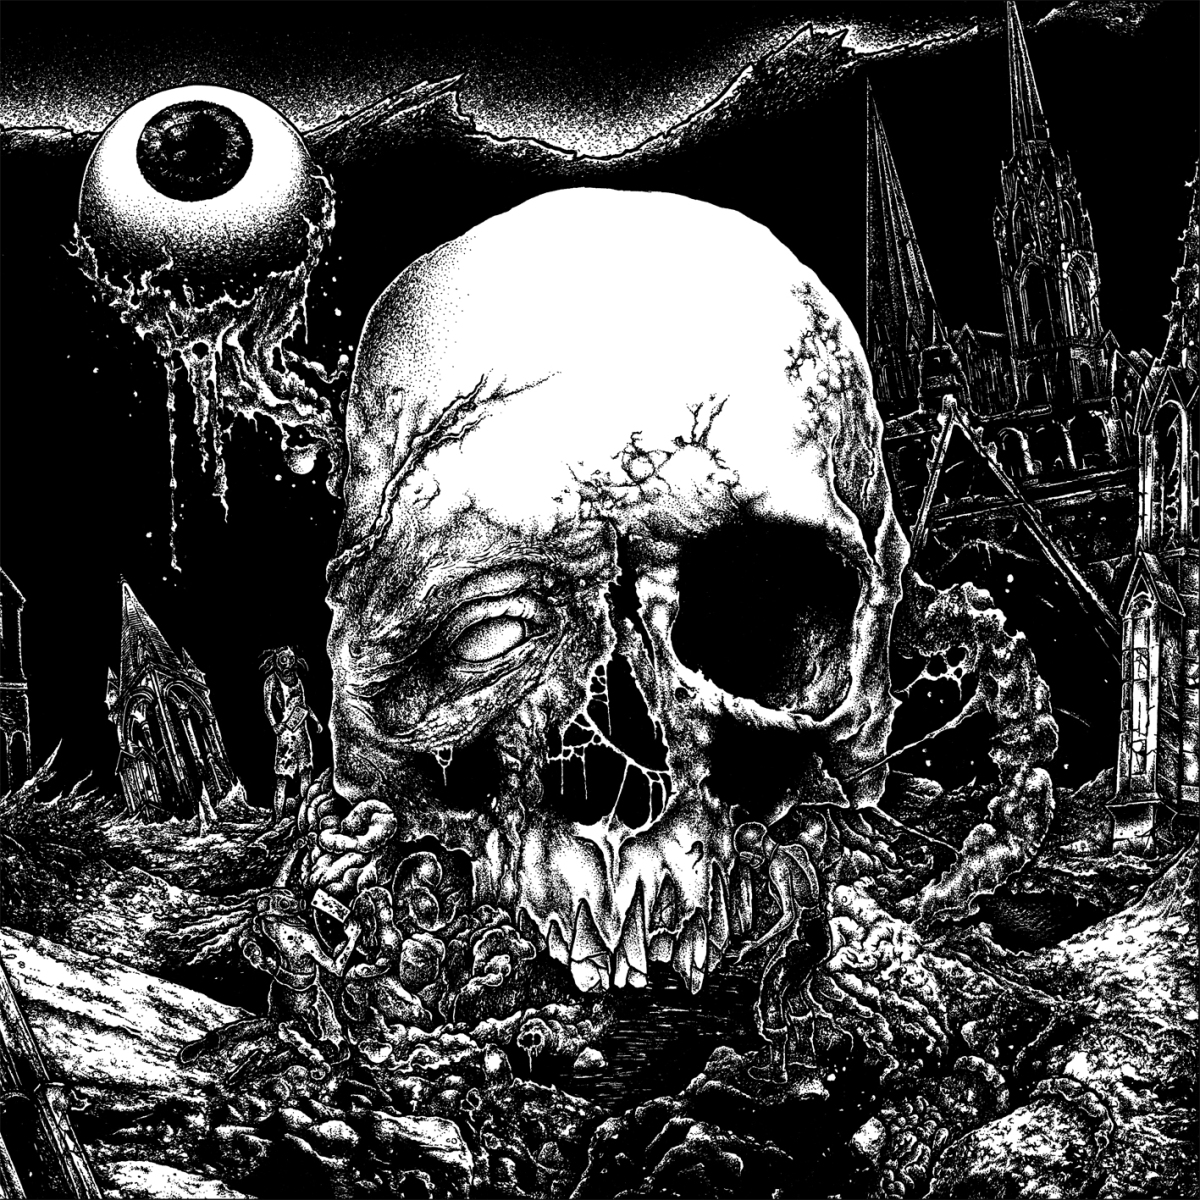 Butcher ABC - North of Hell (Review)